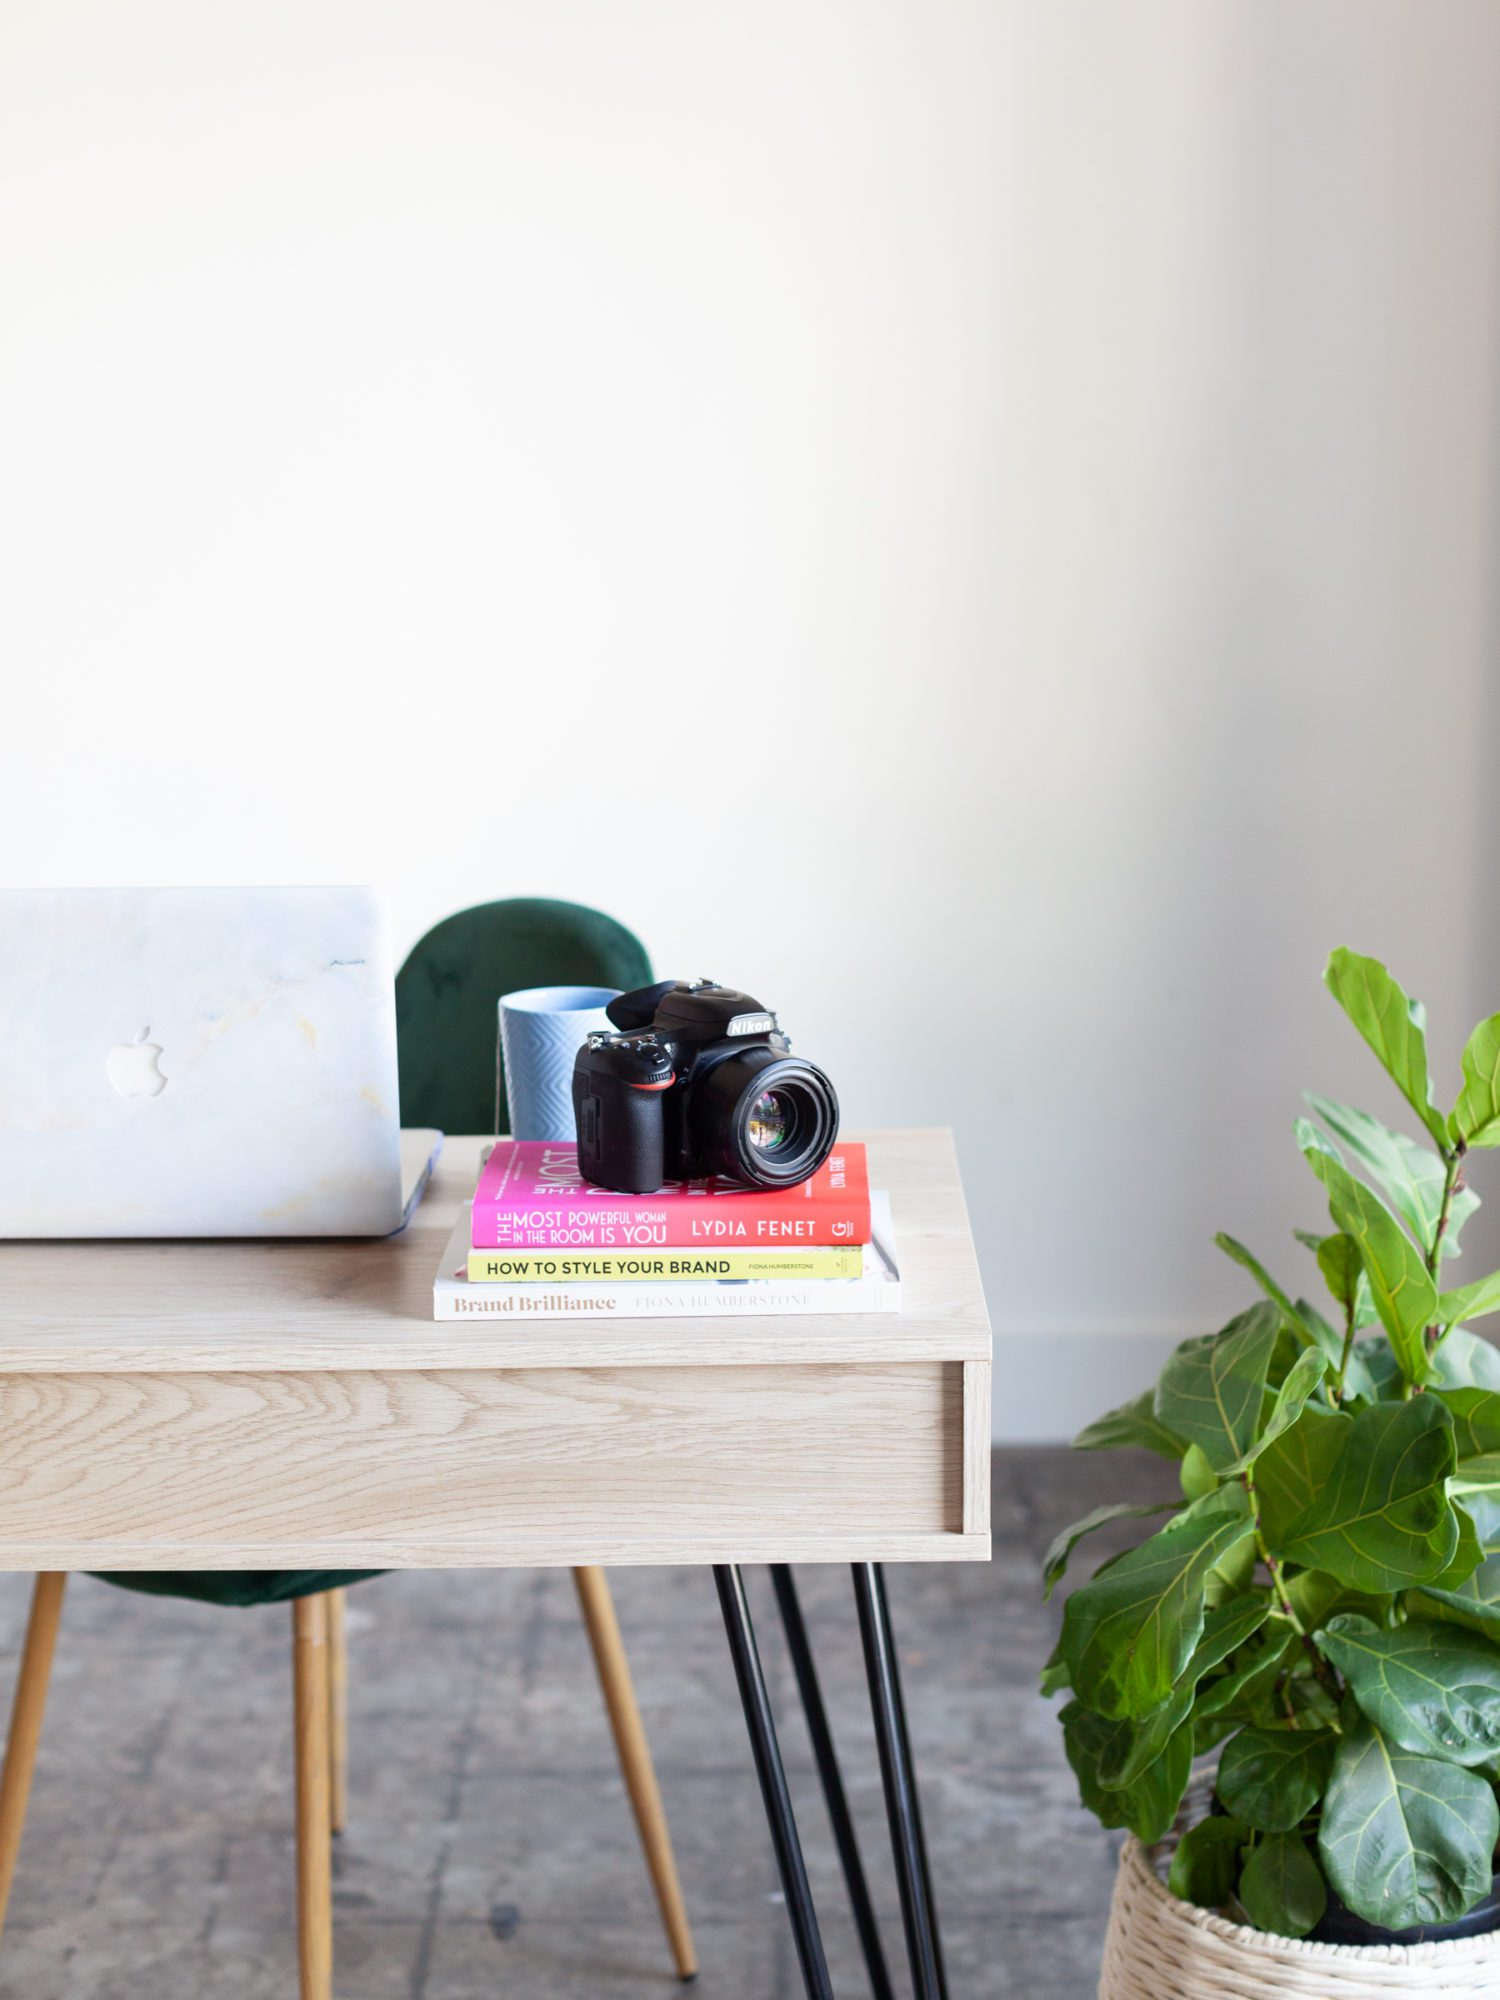 Camera and laptop on desk